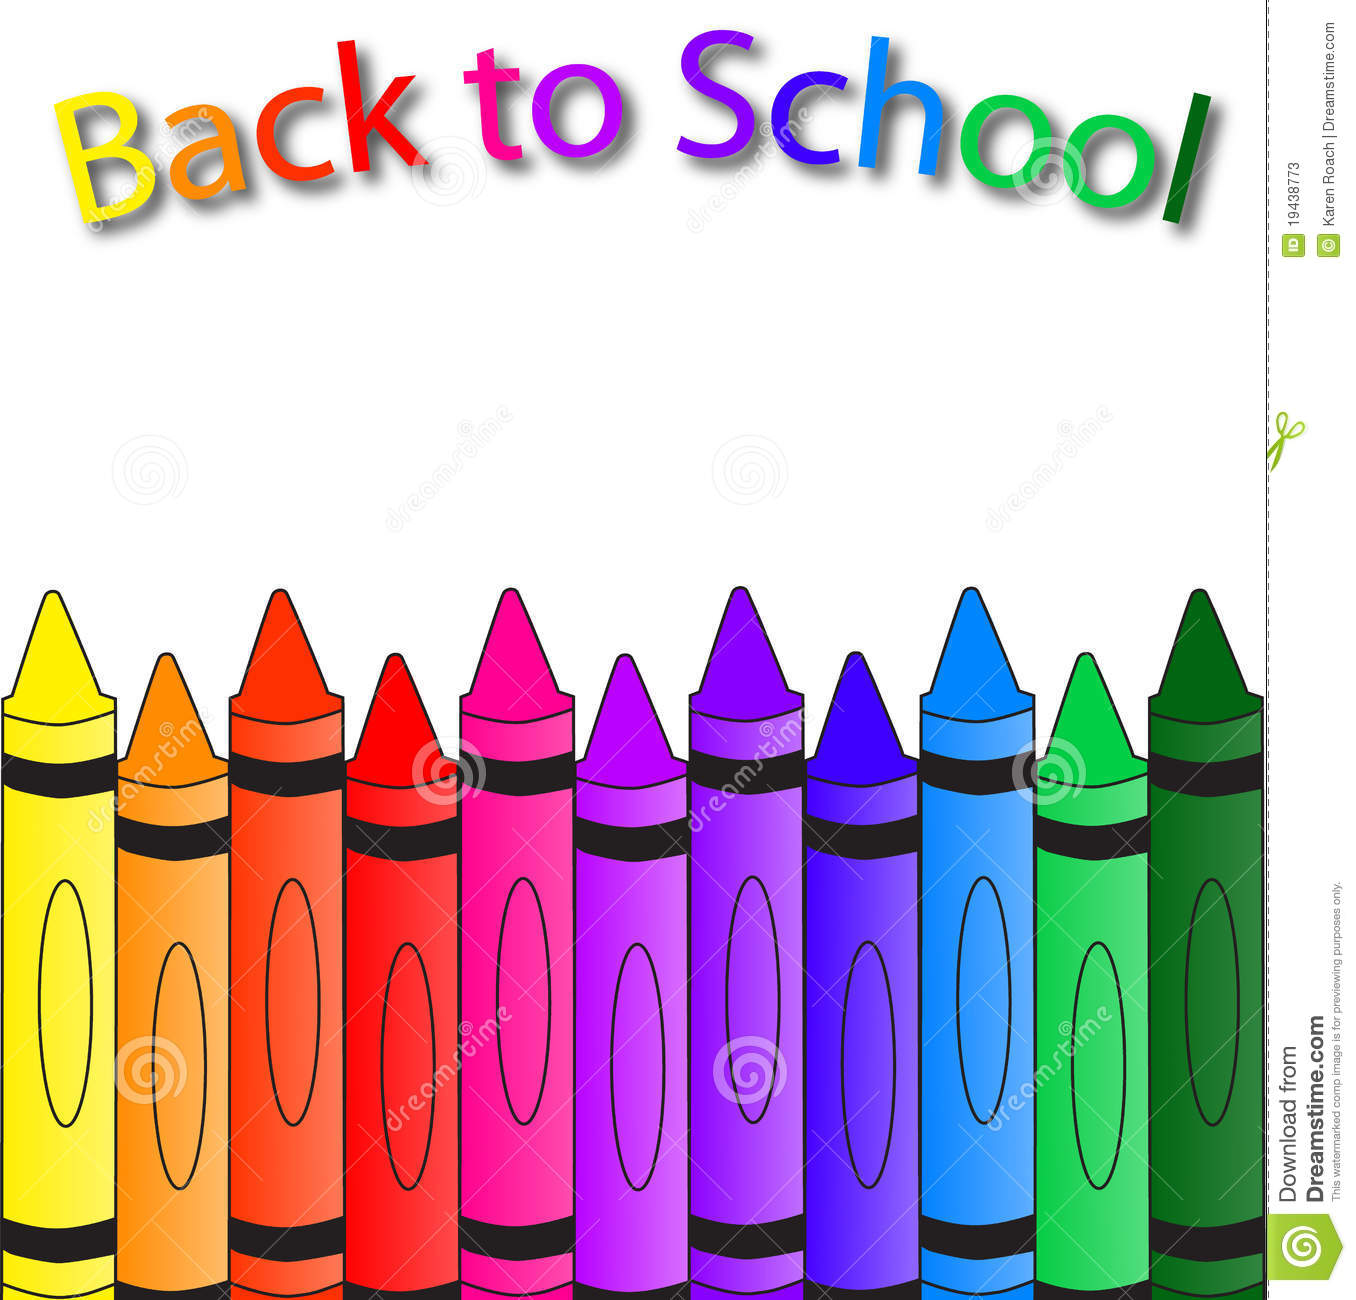 crayola markers clipart free download best crayola markers clipart